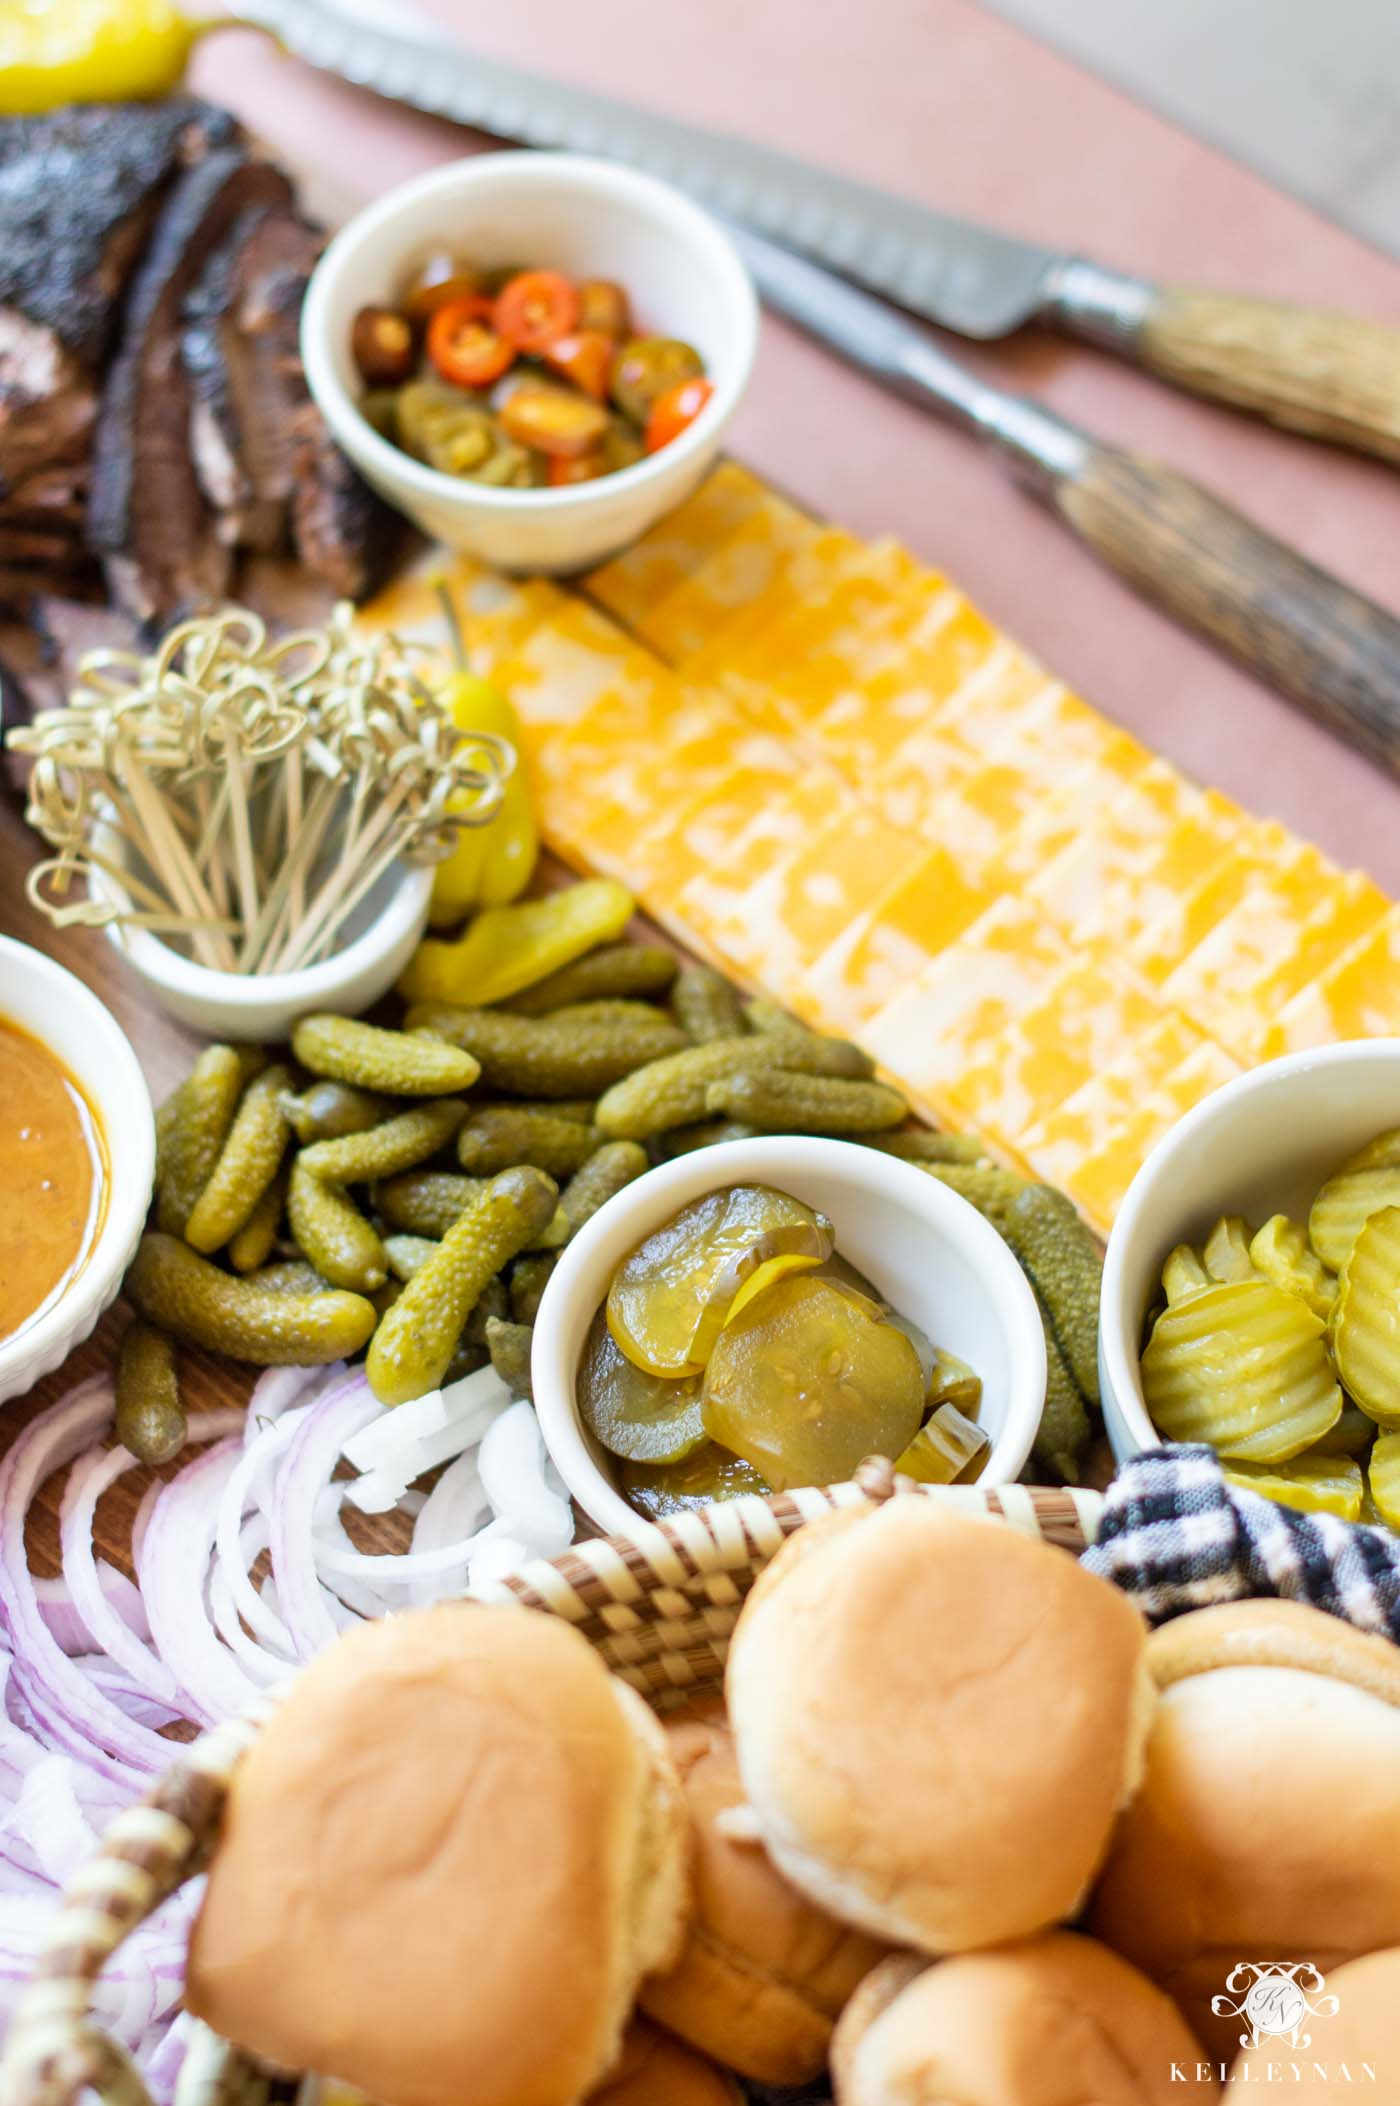 Backyard Barbecue Board with Sliders -- An Easy Charcuterie Platter